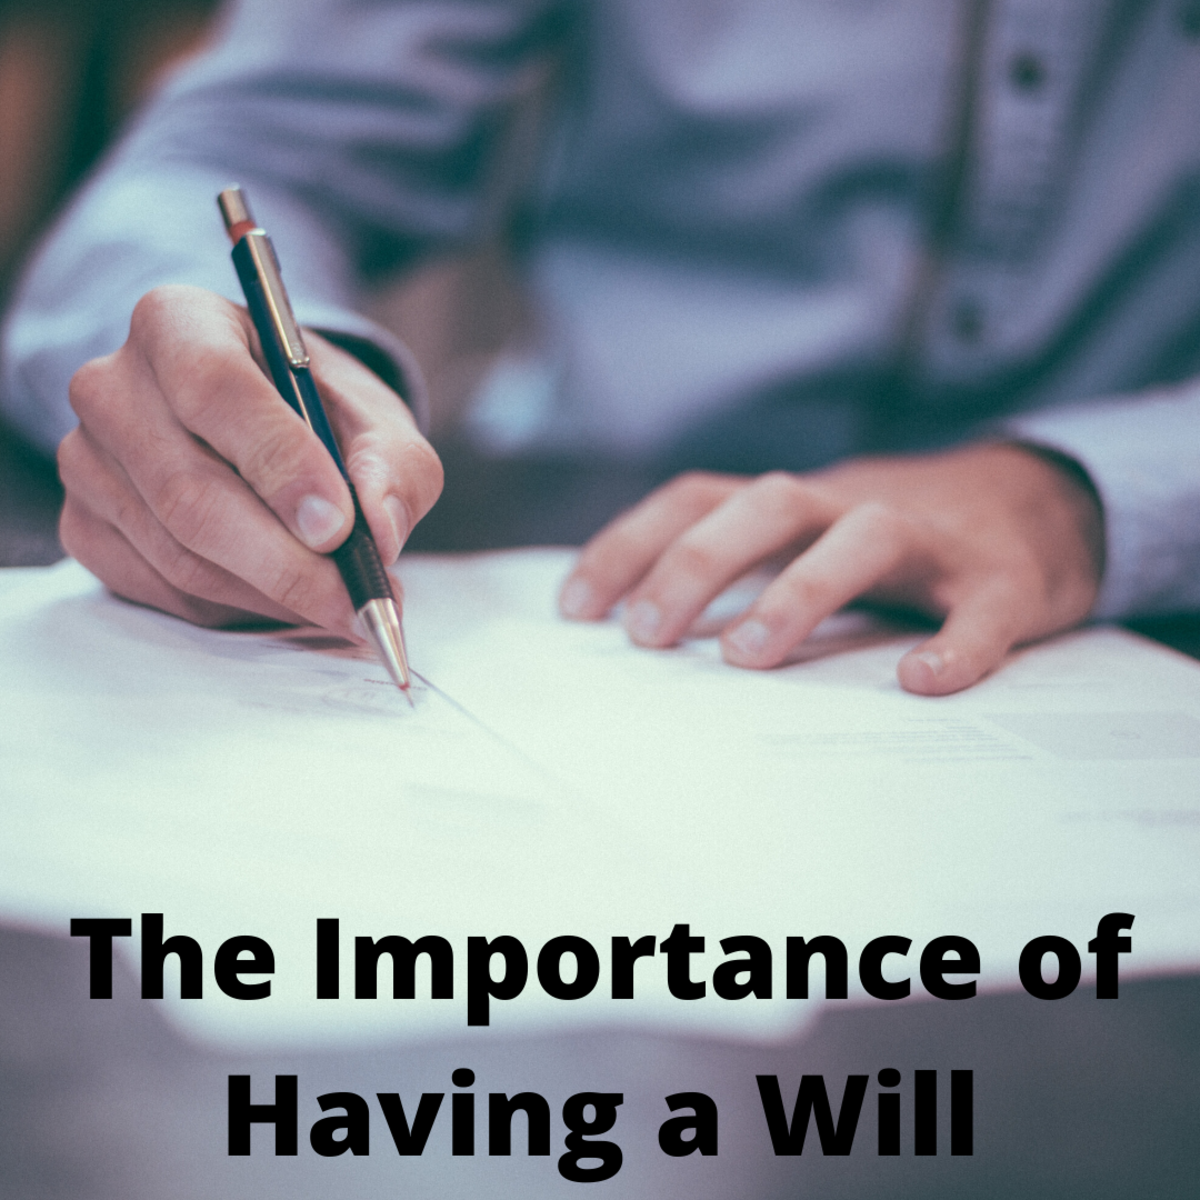 Read on to learn why having a will is such a critical and important thing.